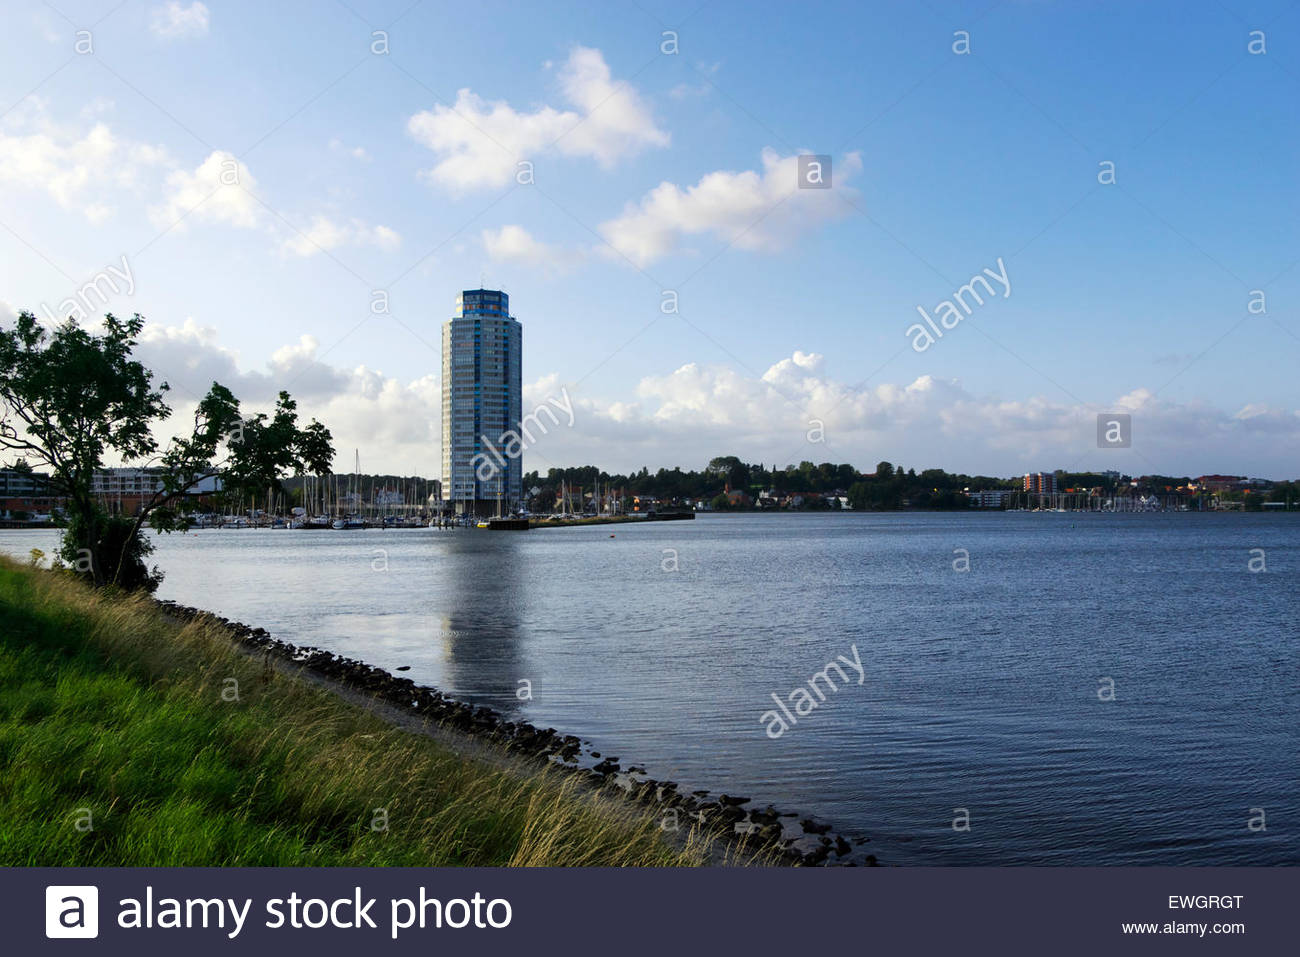 The Wikingturm (Viking Tower) dominates the skyline of Schleswig, the Wiking Yachthafen at its base. - Stock Image